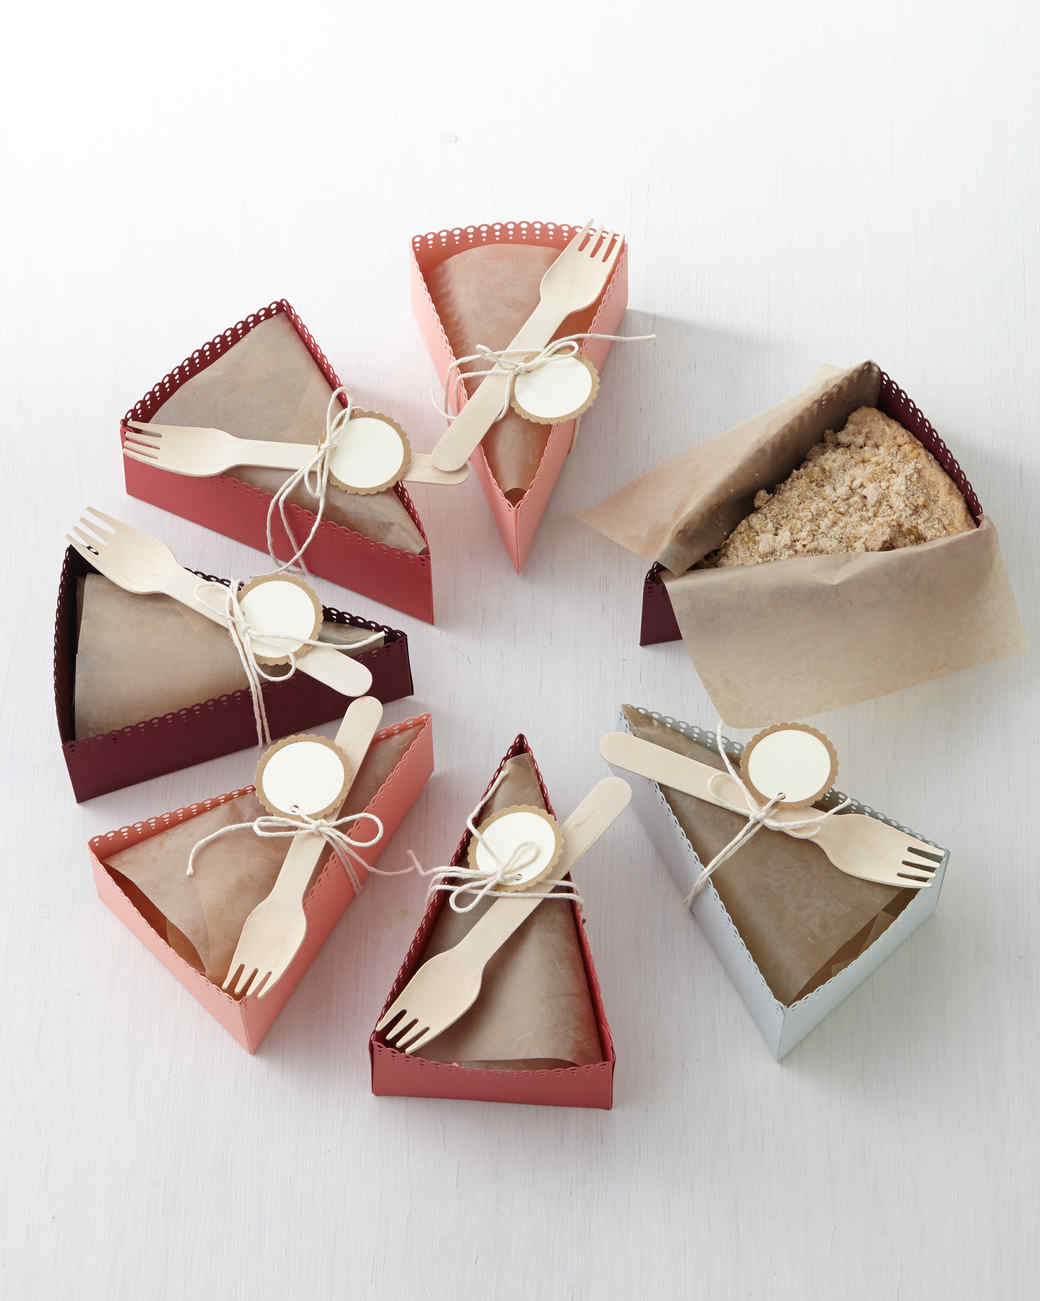 DIY Paper Pie-Slice Boxes